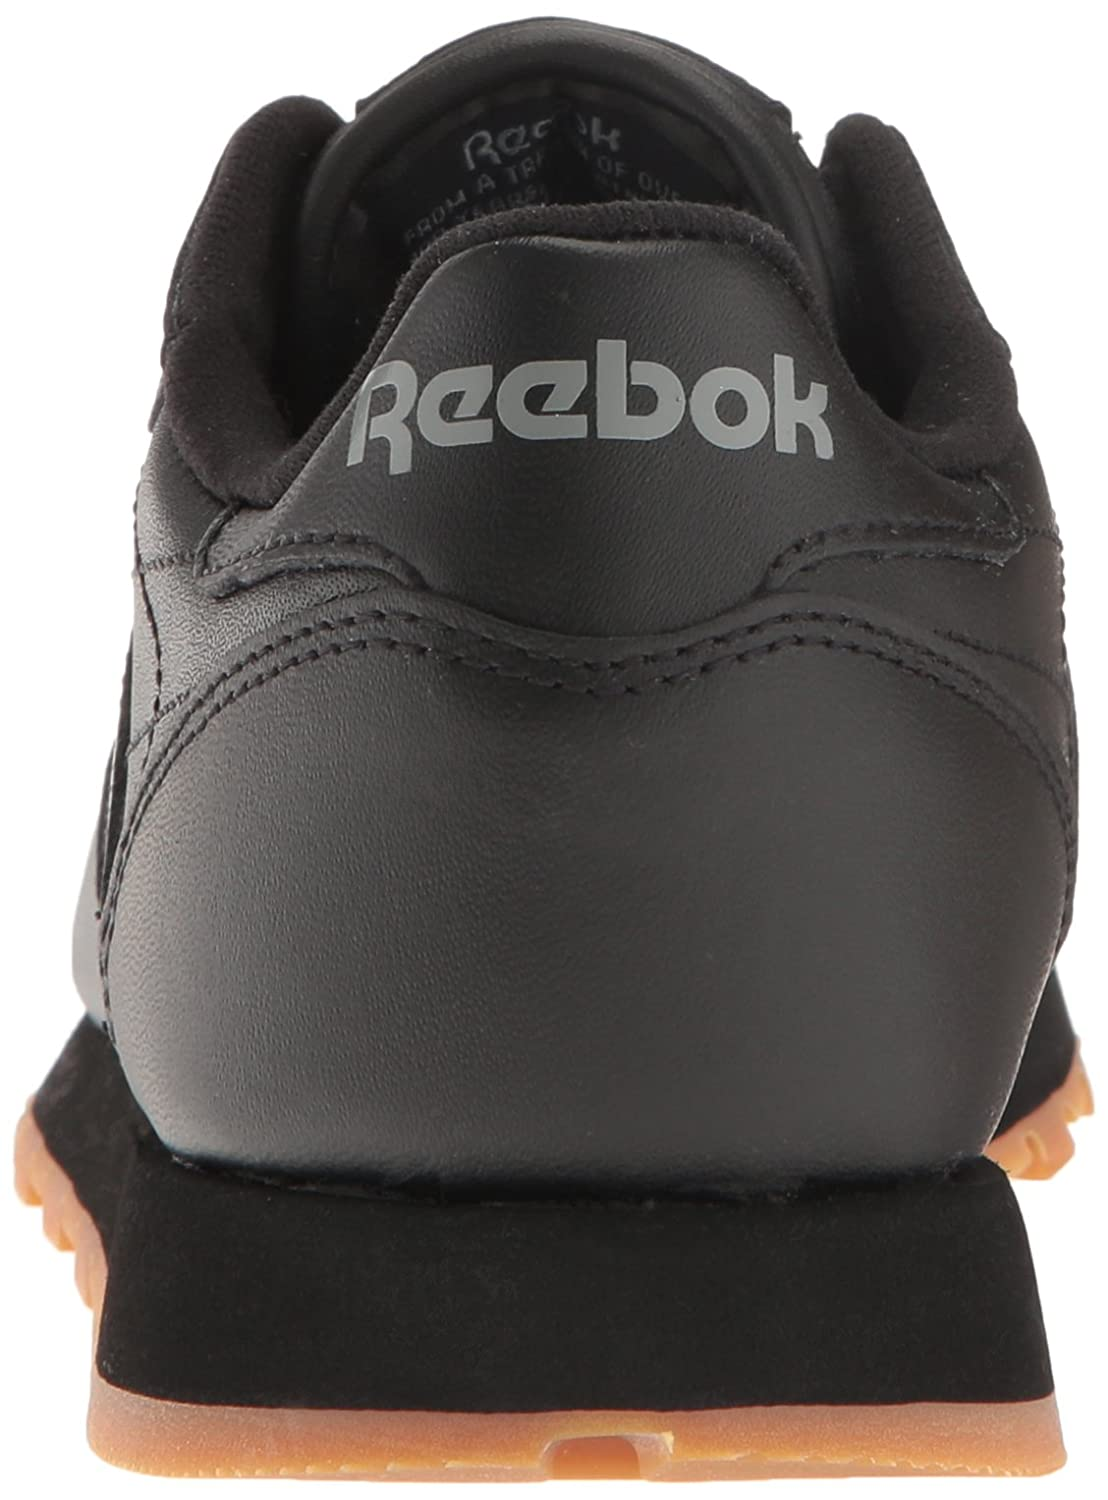 Reebok Zapatos Clásicos Amazon 7XQTU